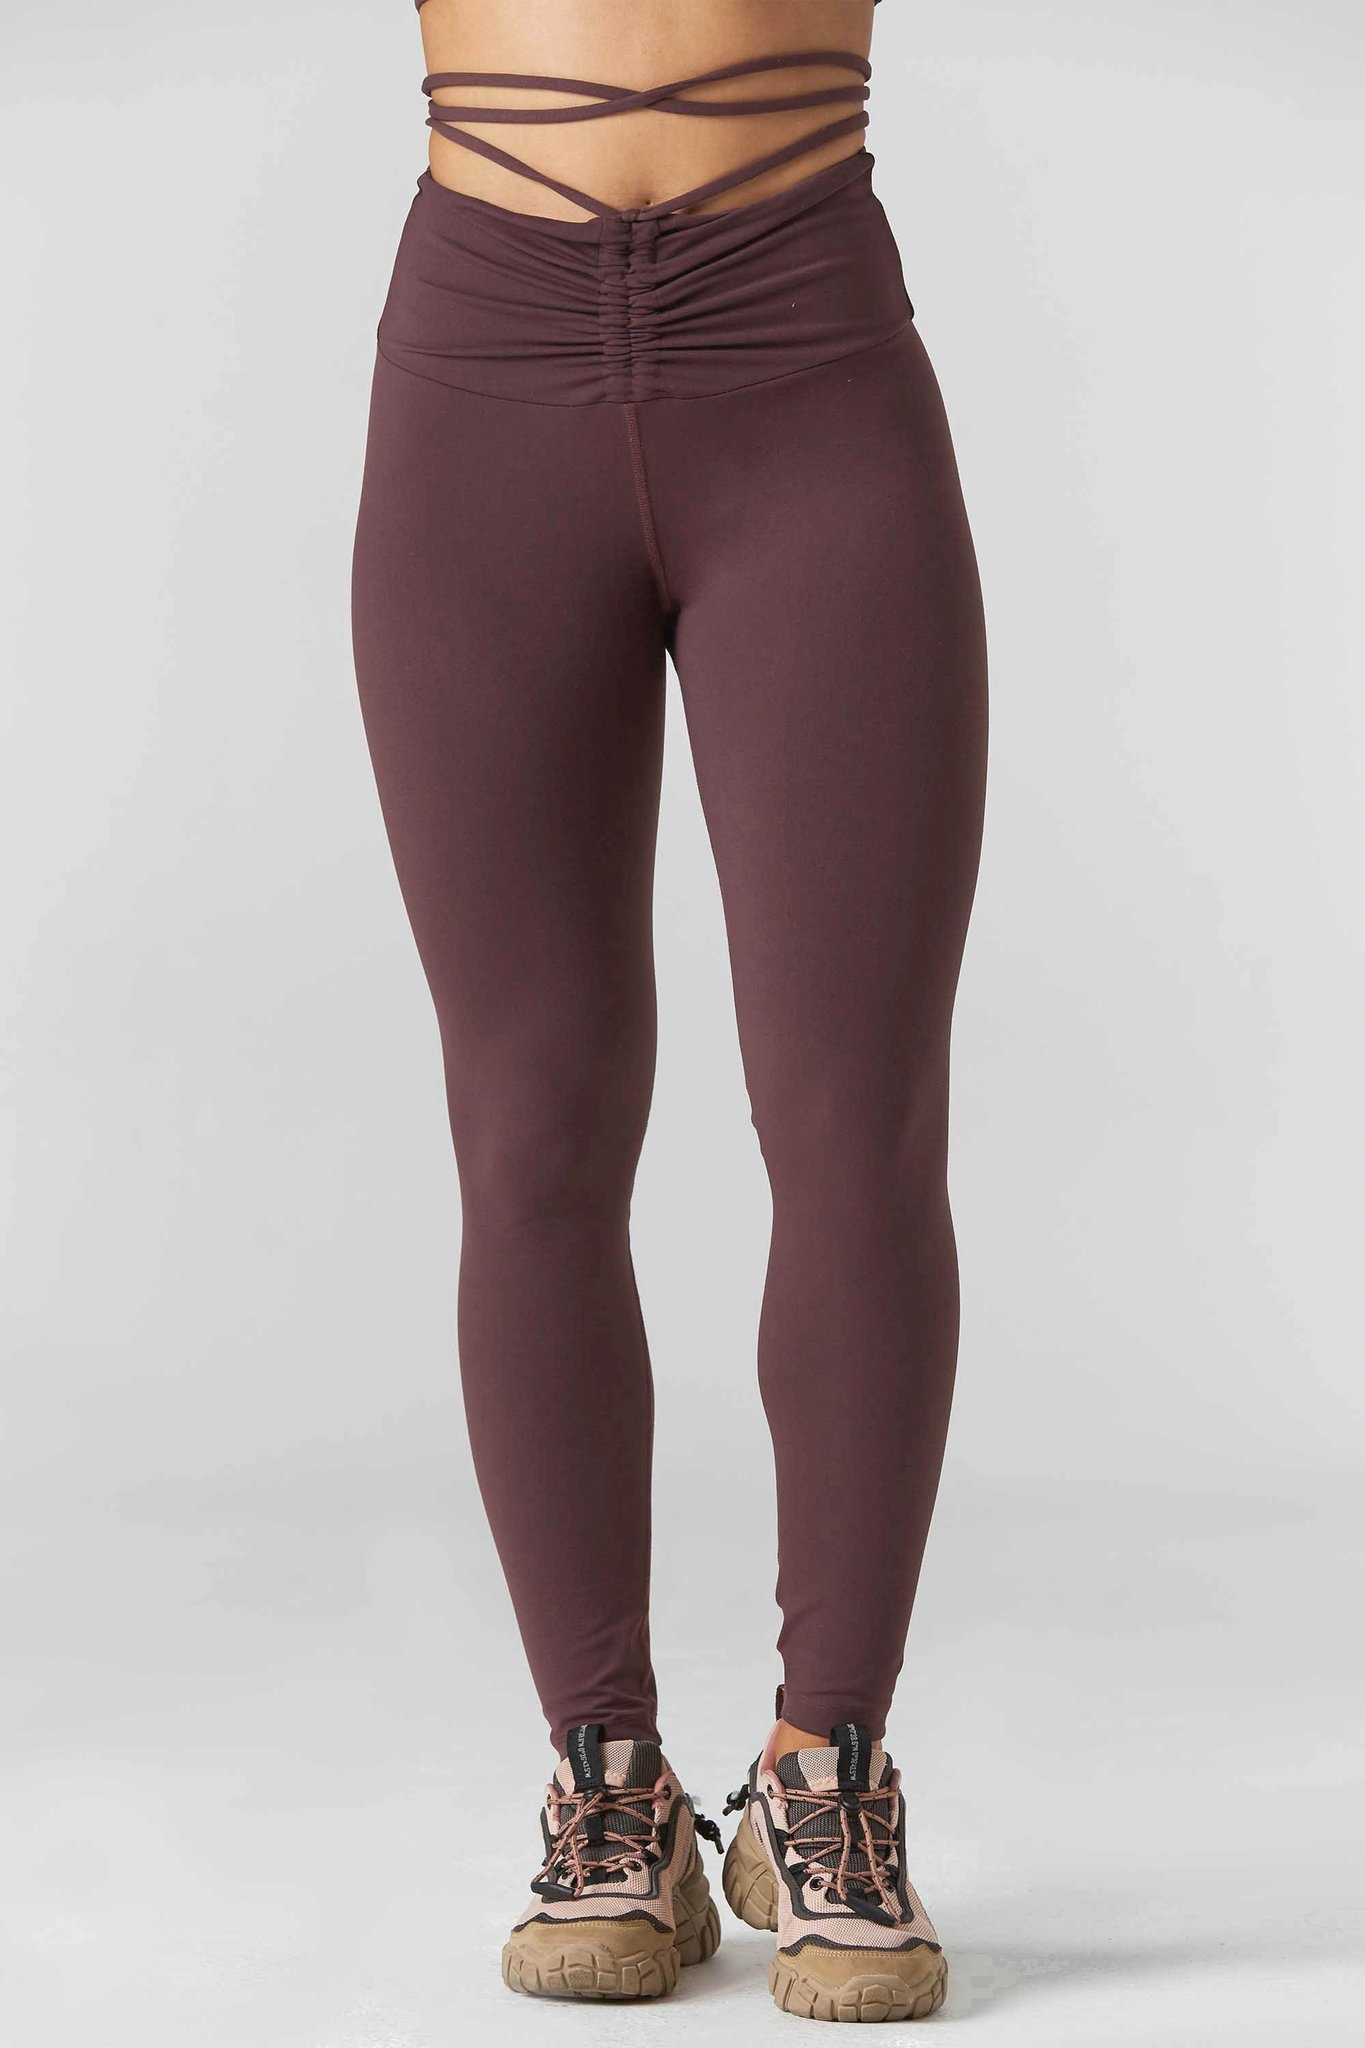 9.2.5 Butt Seriously Fig Legging